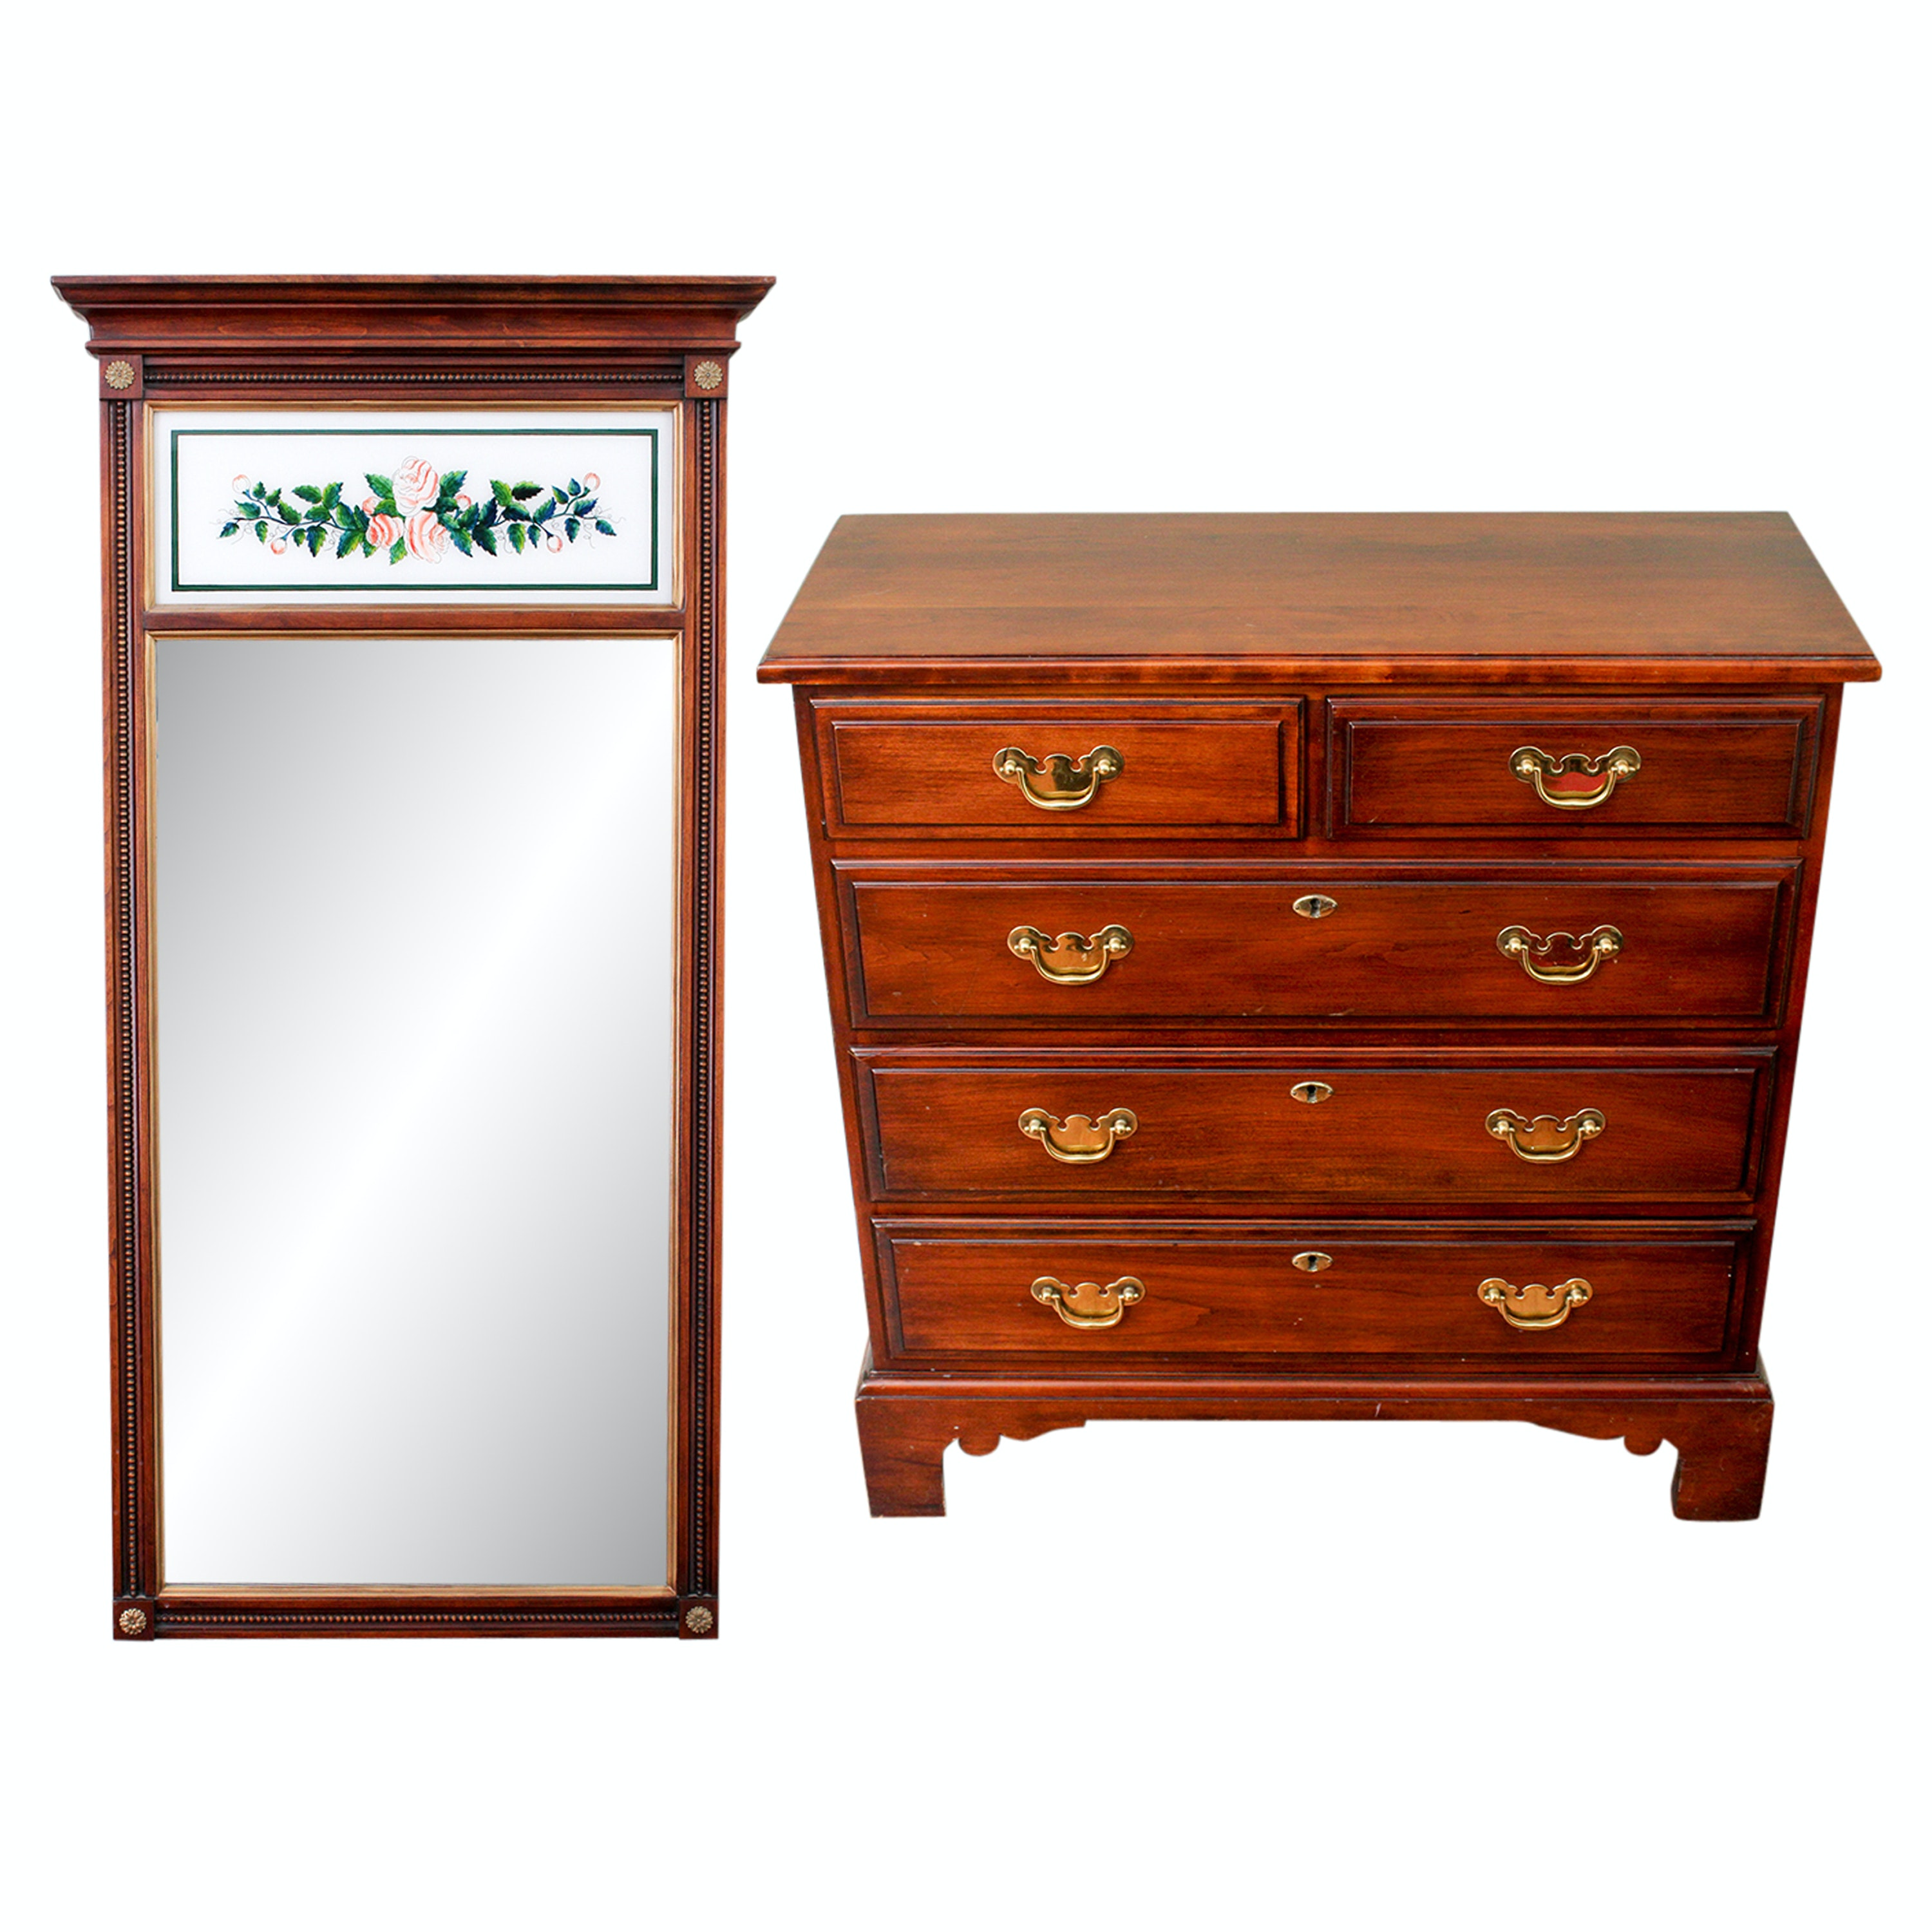 Statton Federal Style Chest of Drawers and Reverse Painted Wall Mirror